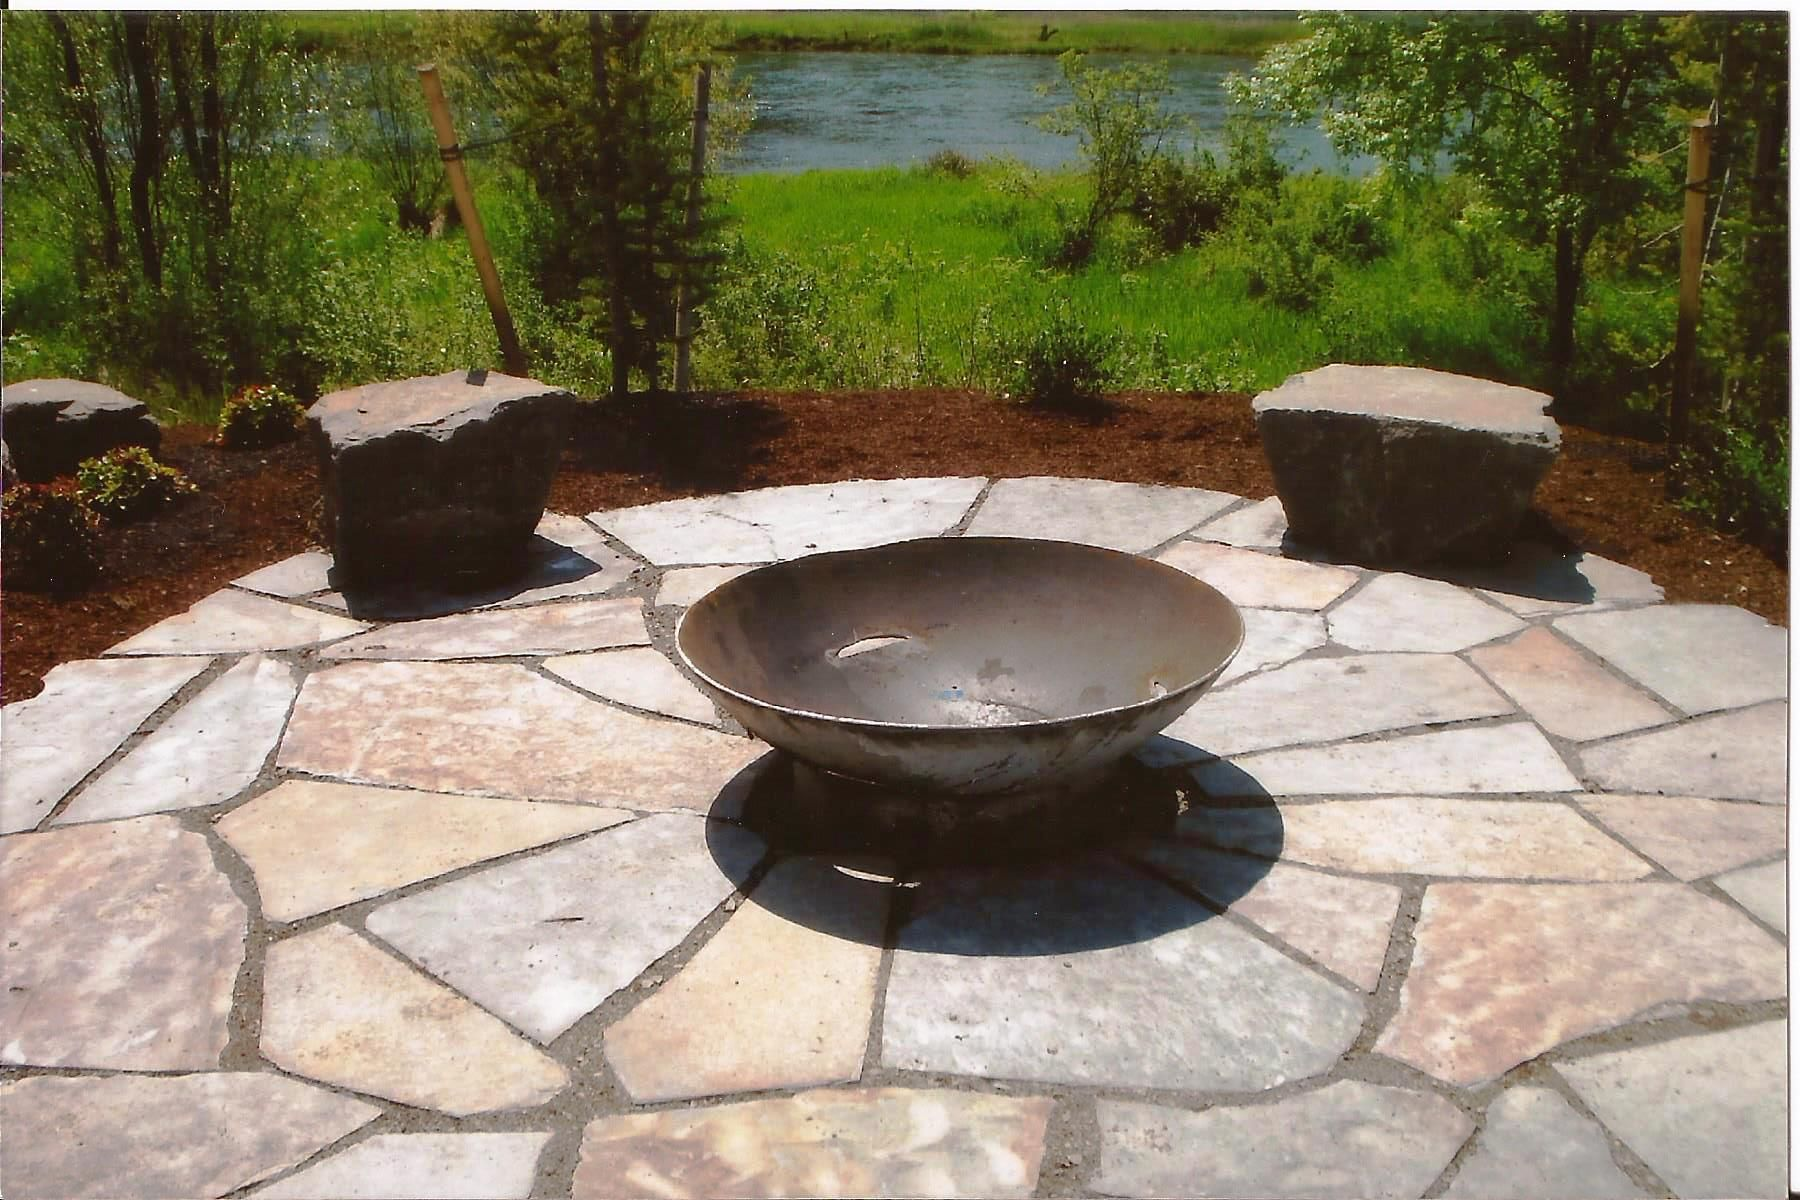 garden inspiration interesting large bowl fire pit and seating on slice stone backyard pavers as small patio decor in green back garden landscaping with - Patio Design Ideas With Fire Pits